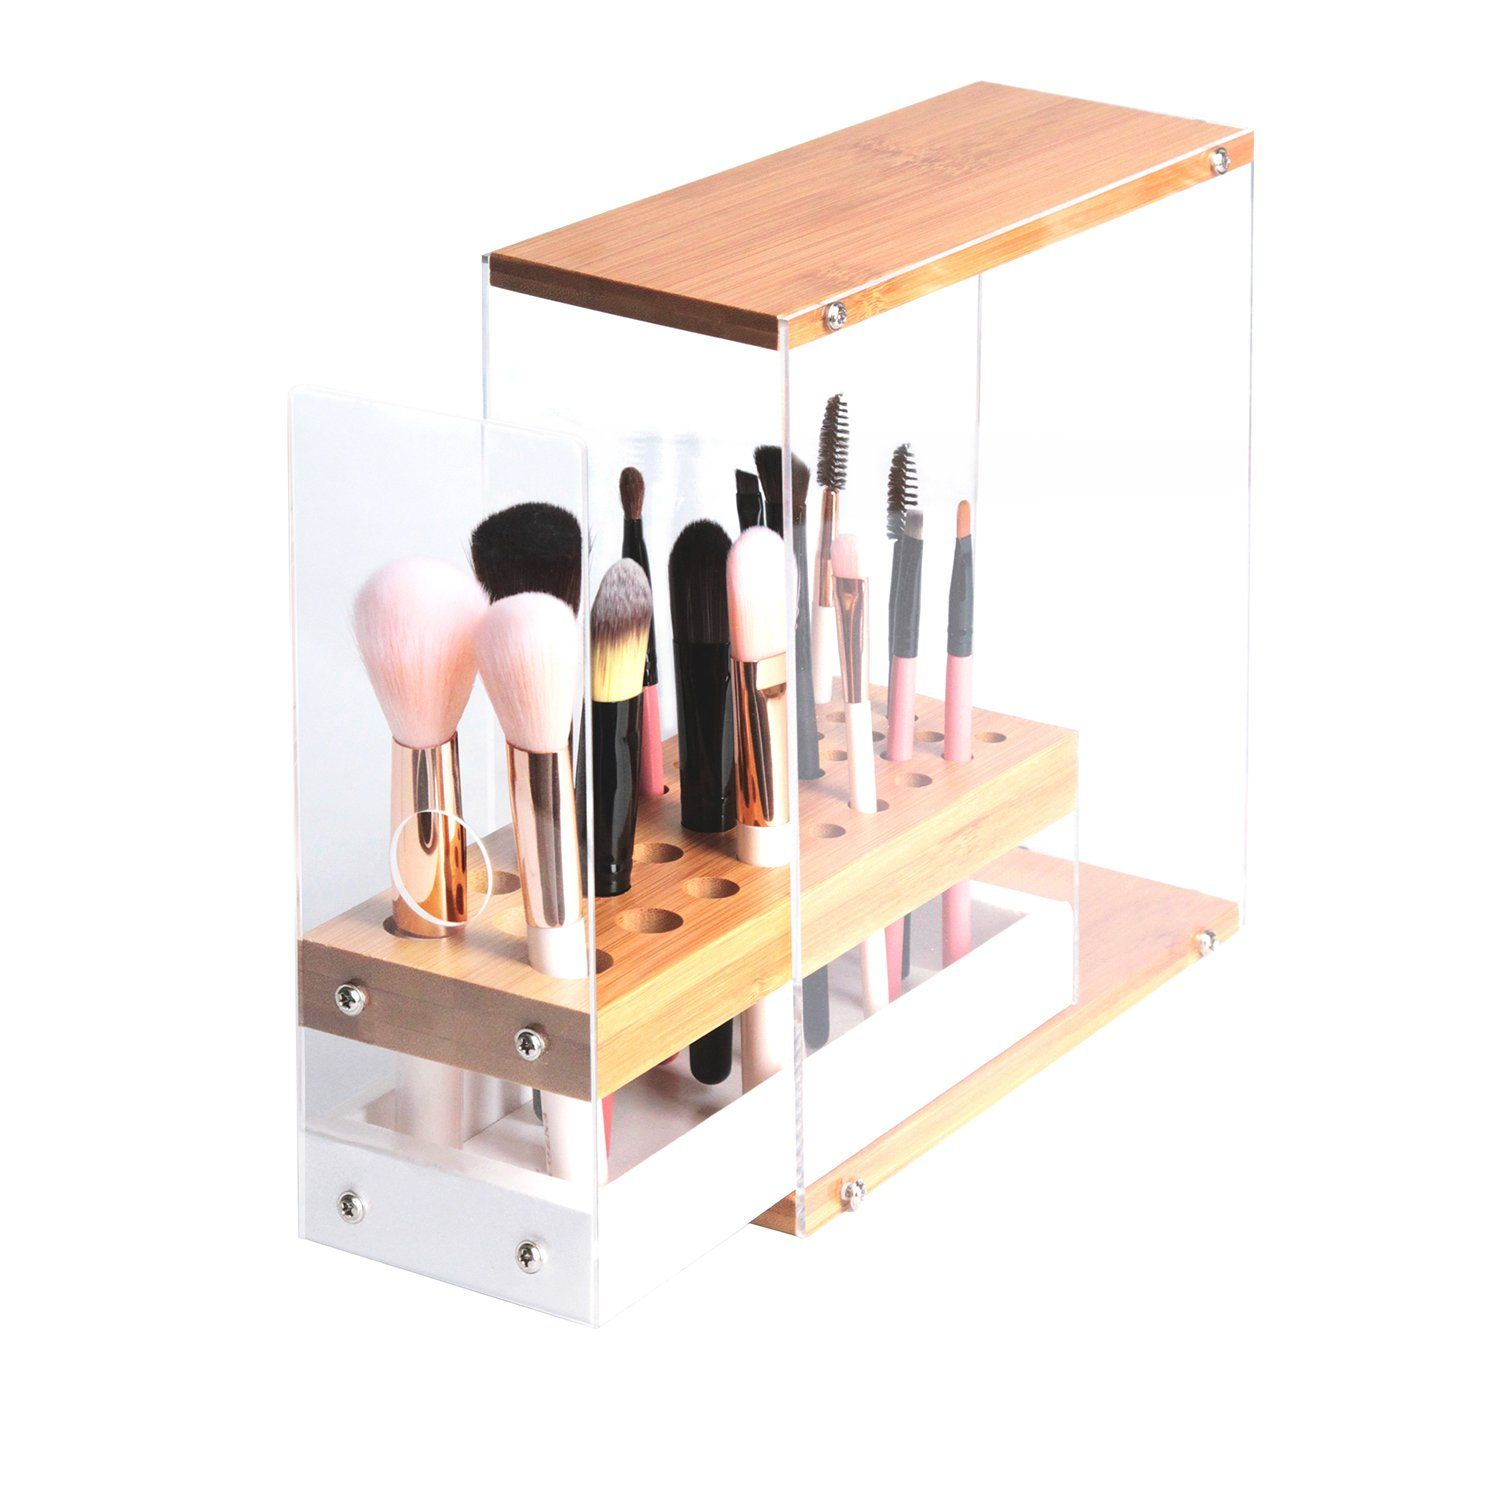 JackCubeDesign 31 Holes Acrylic Bamboo Brush Holder